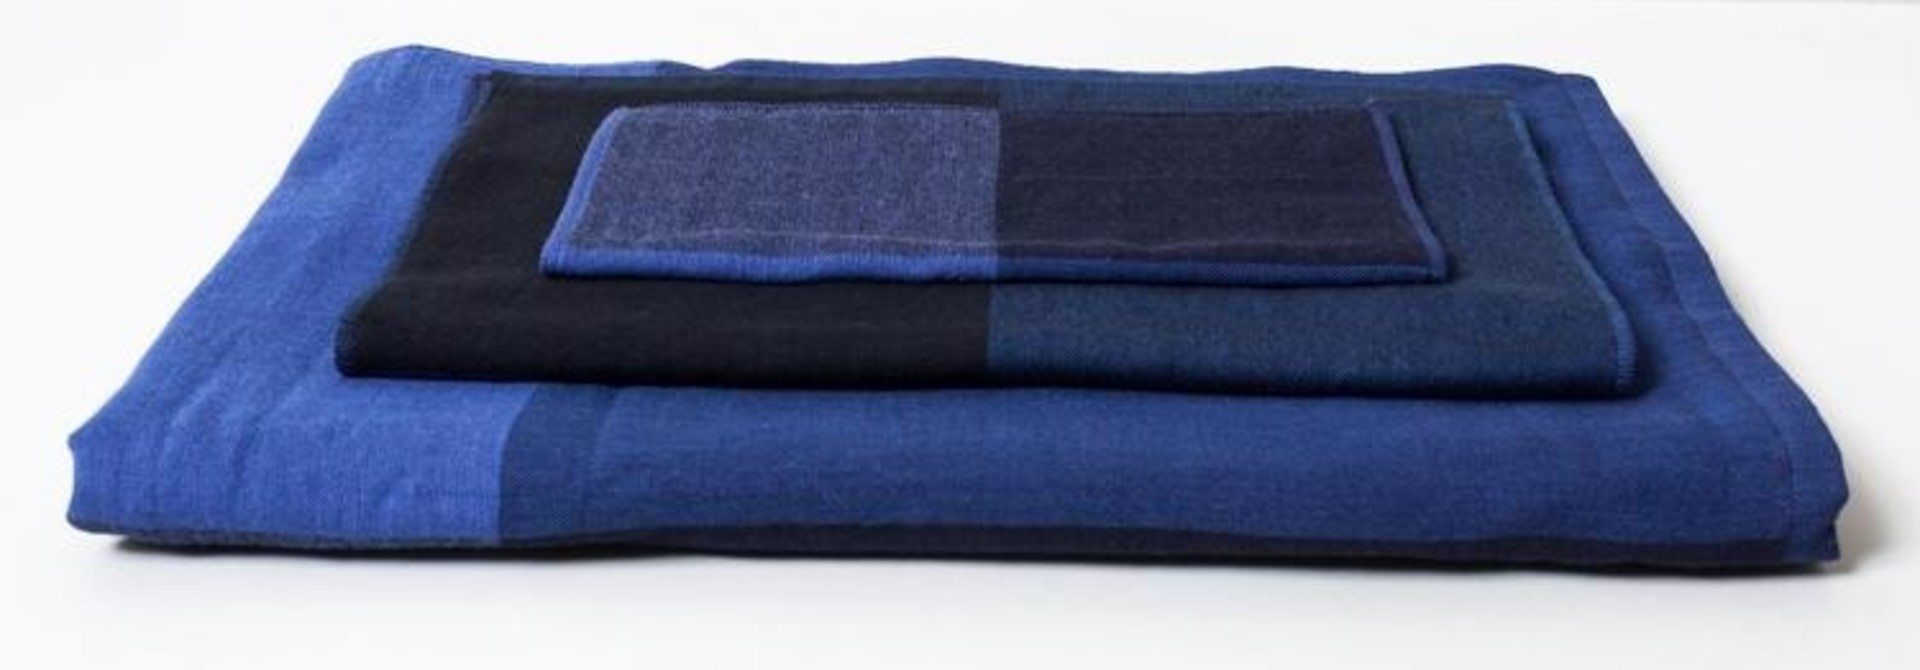 Face Towel - Chambray - Blue/Blk